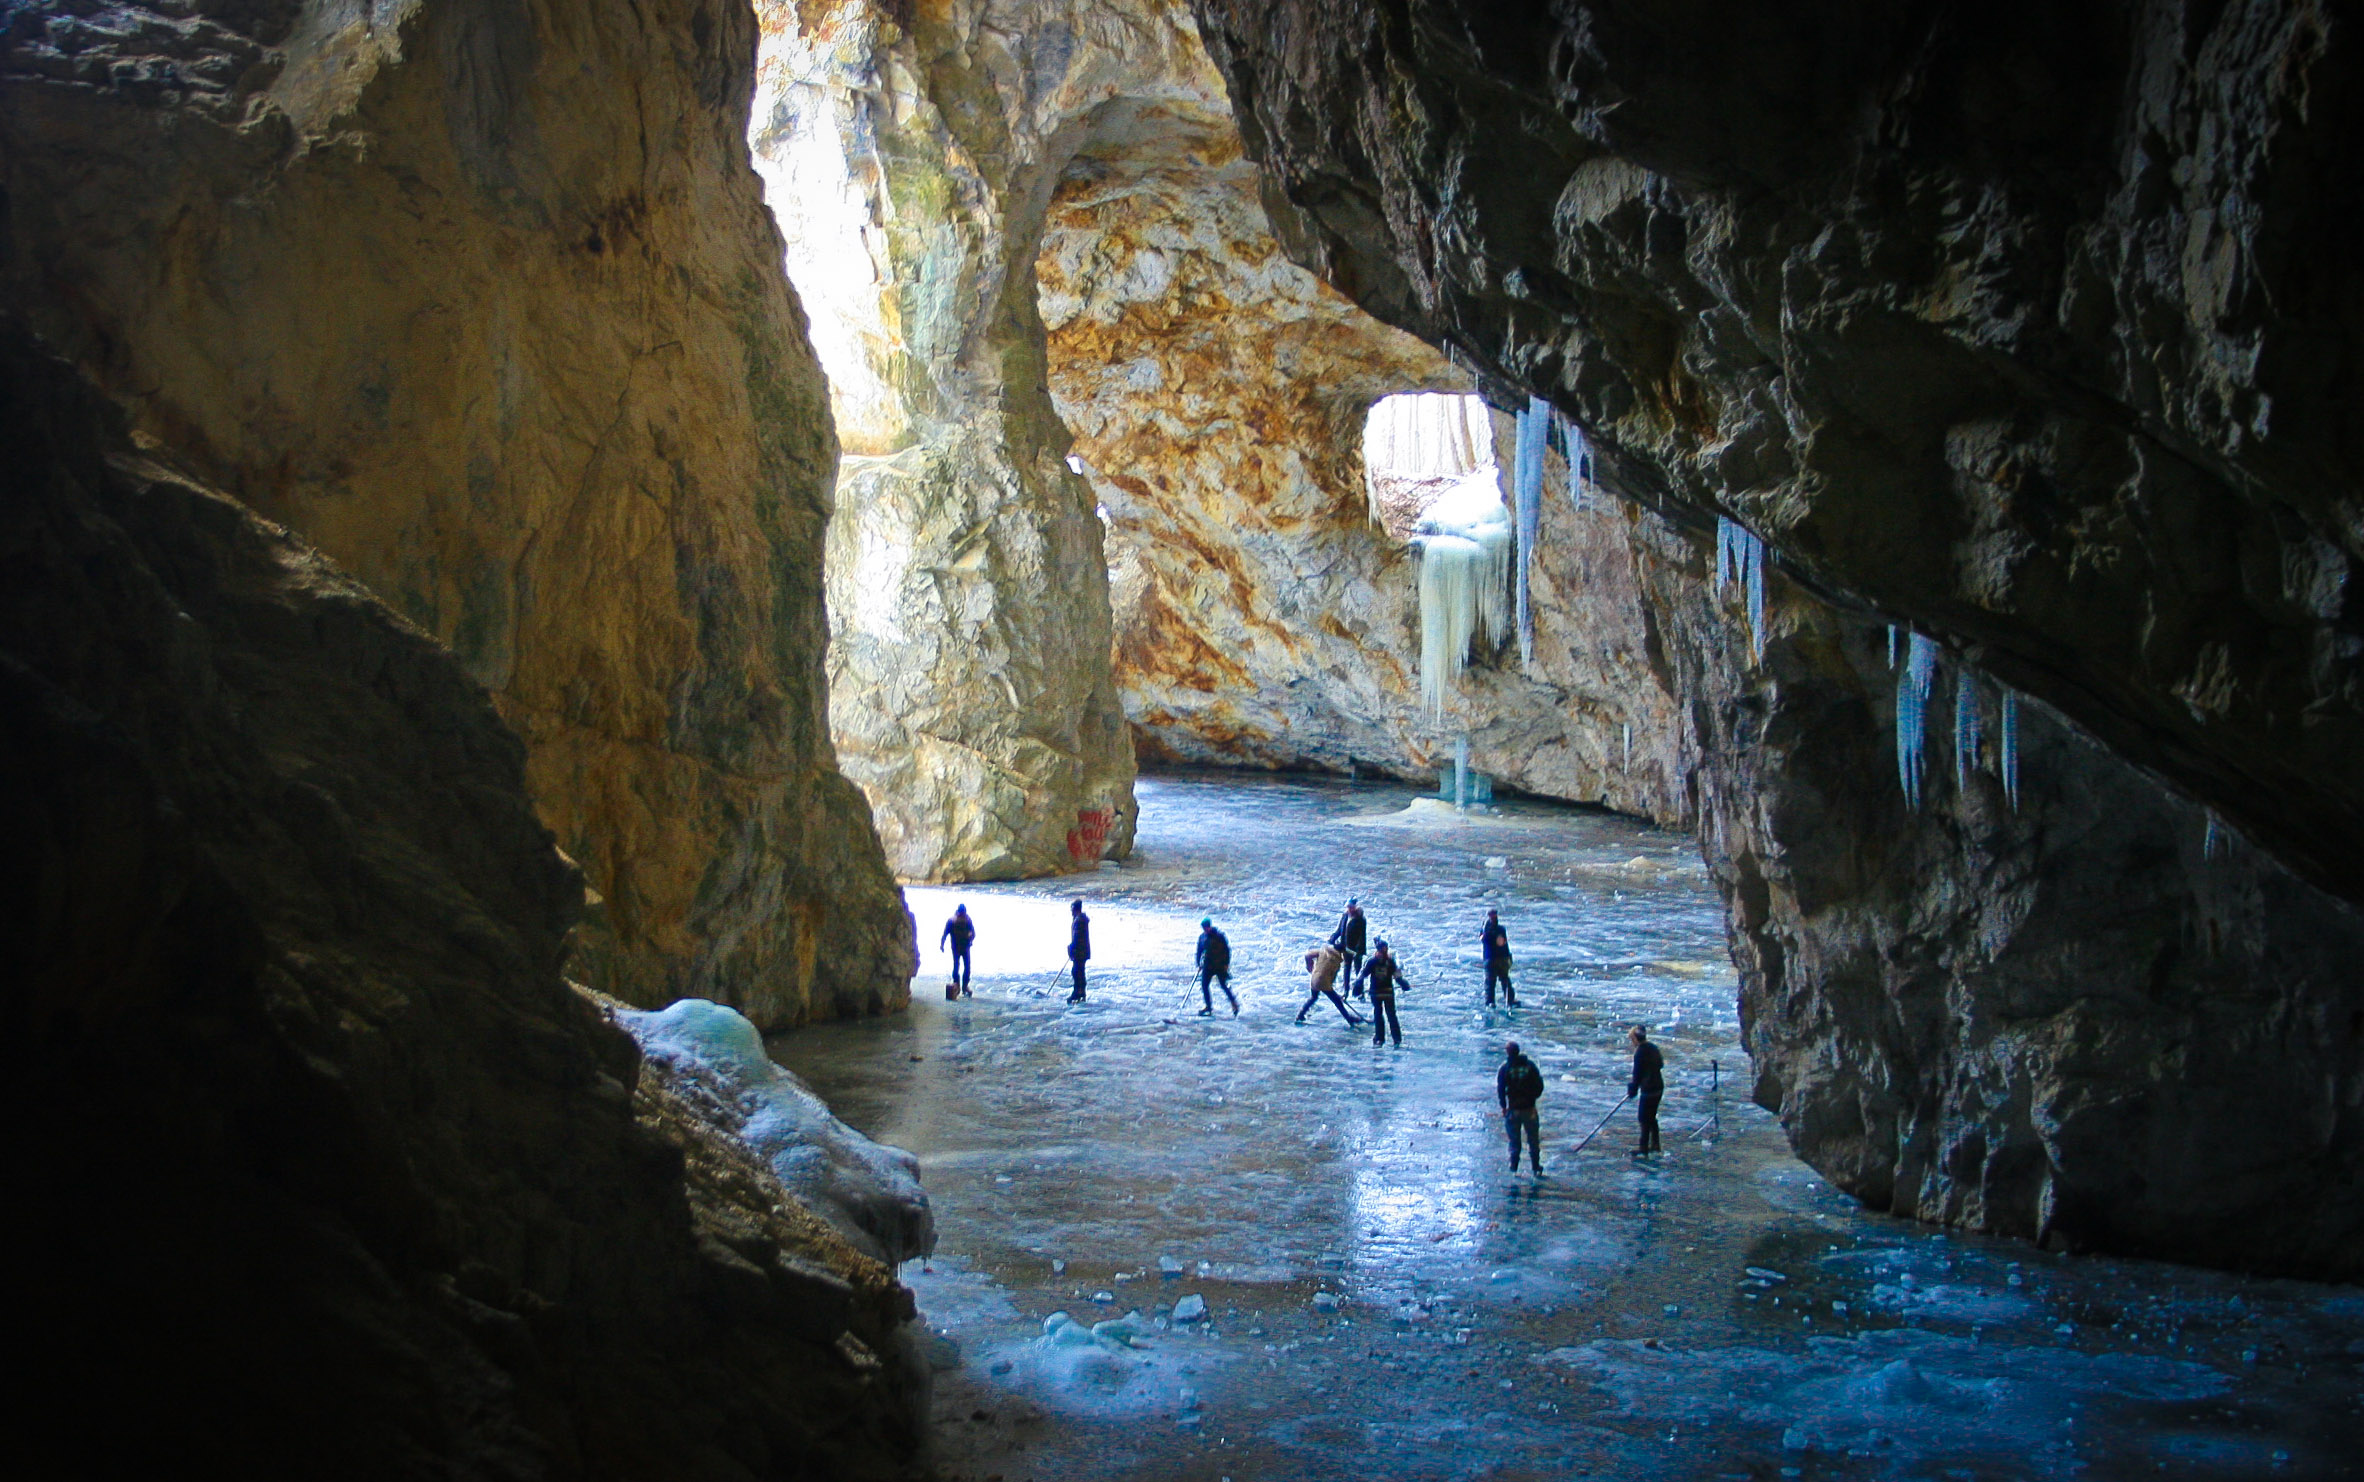 Cave hockey in abandoned Quebec mine